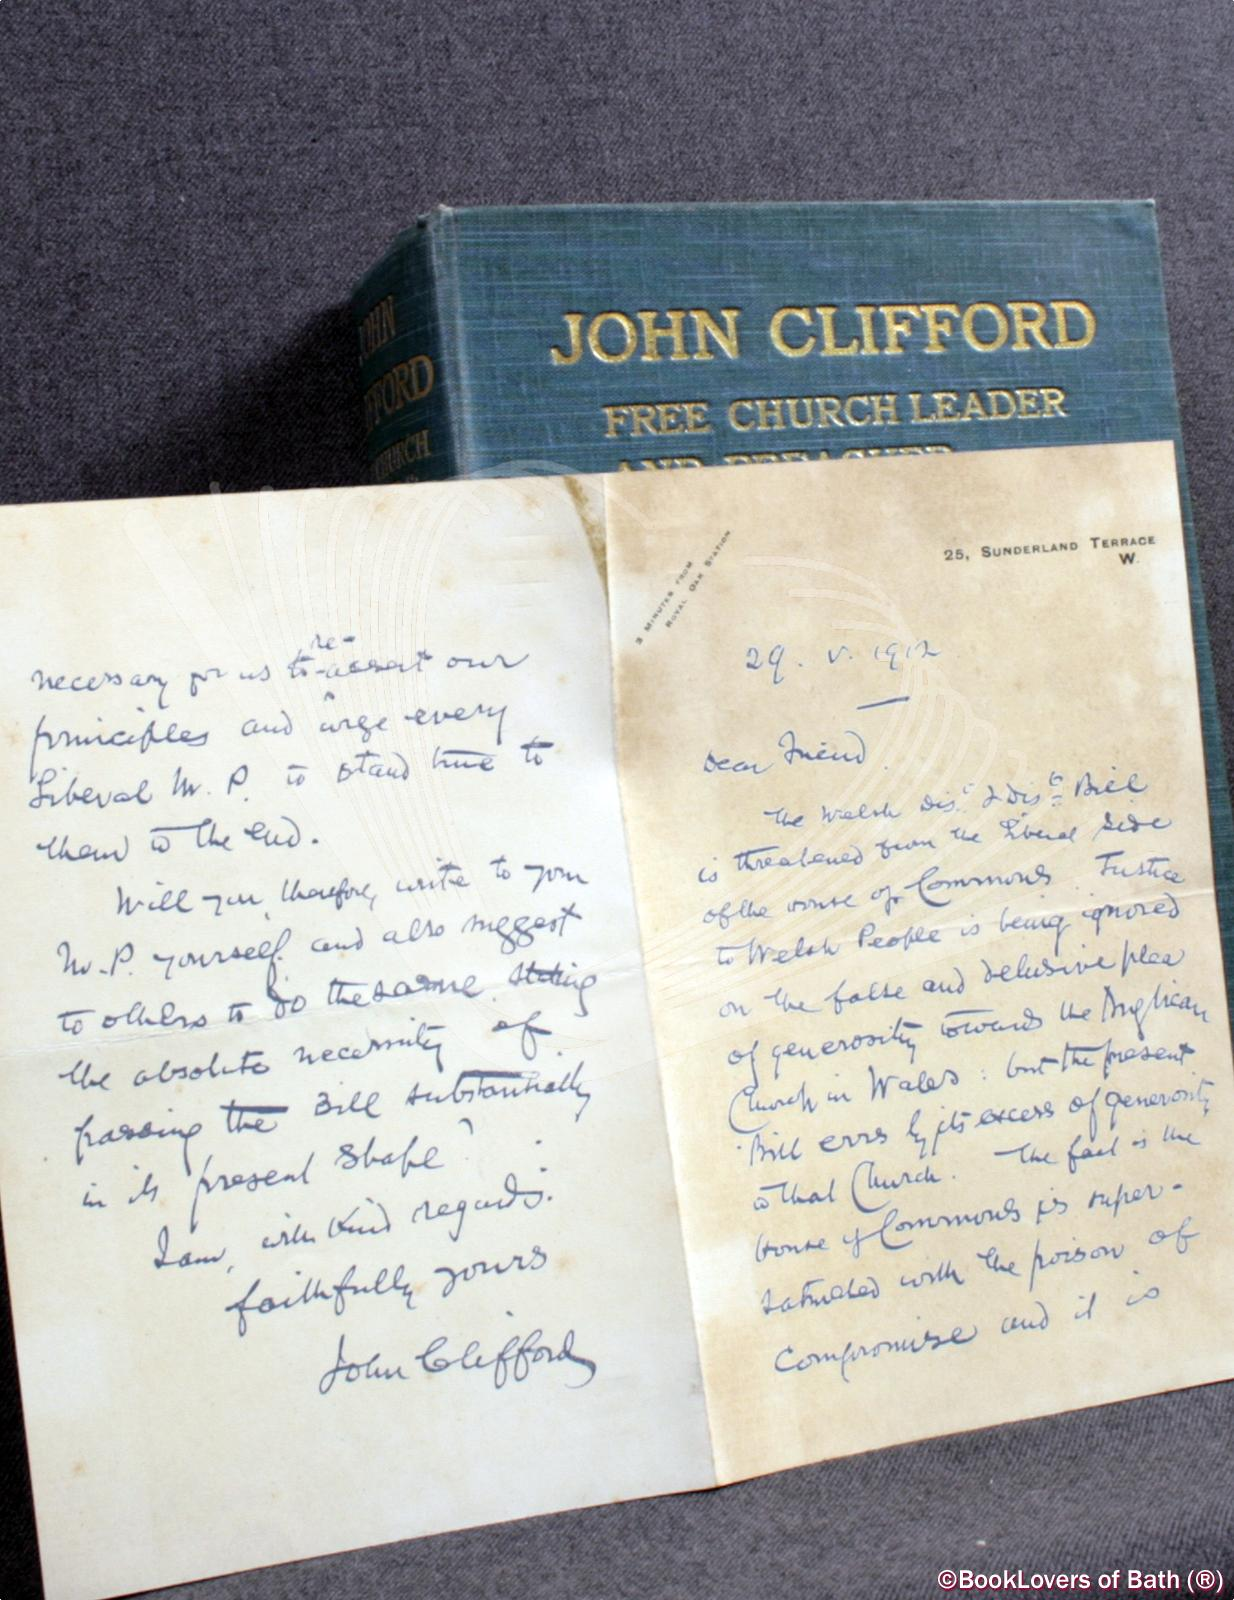 John Clifford: Free Church Leader and Preacher - Charles T. [Thomas] Bateman